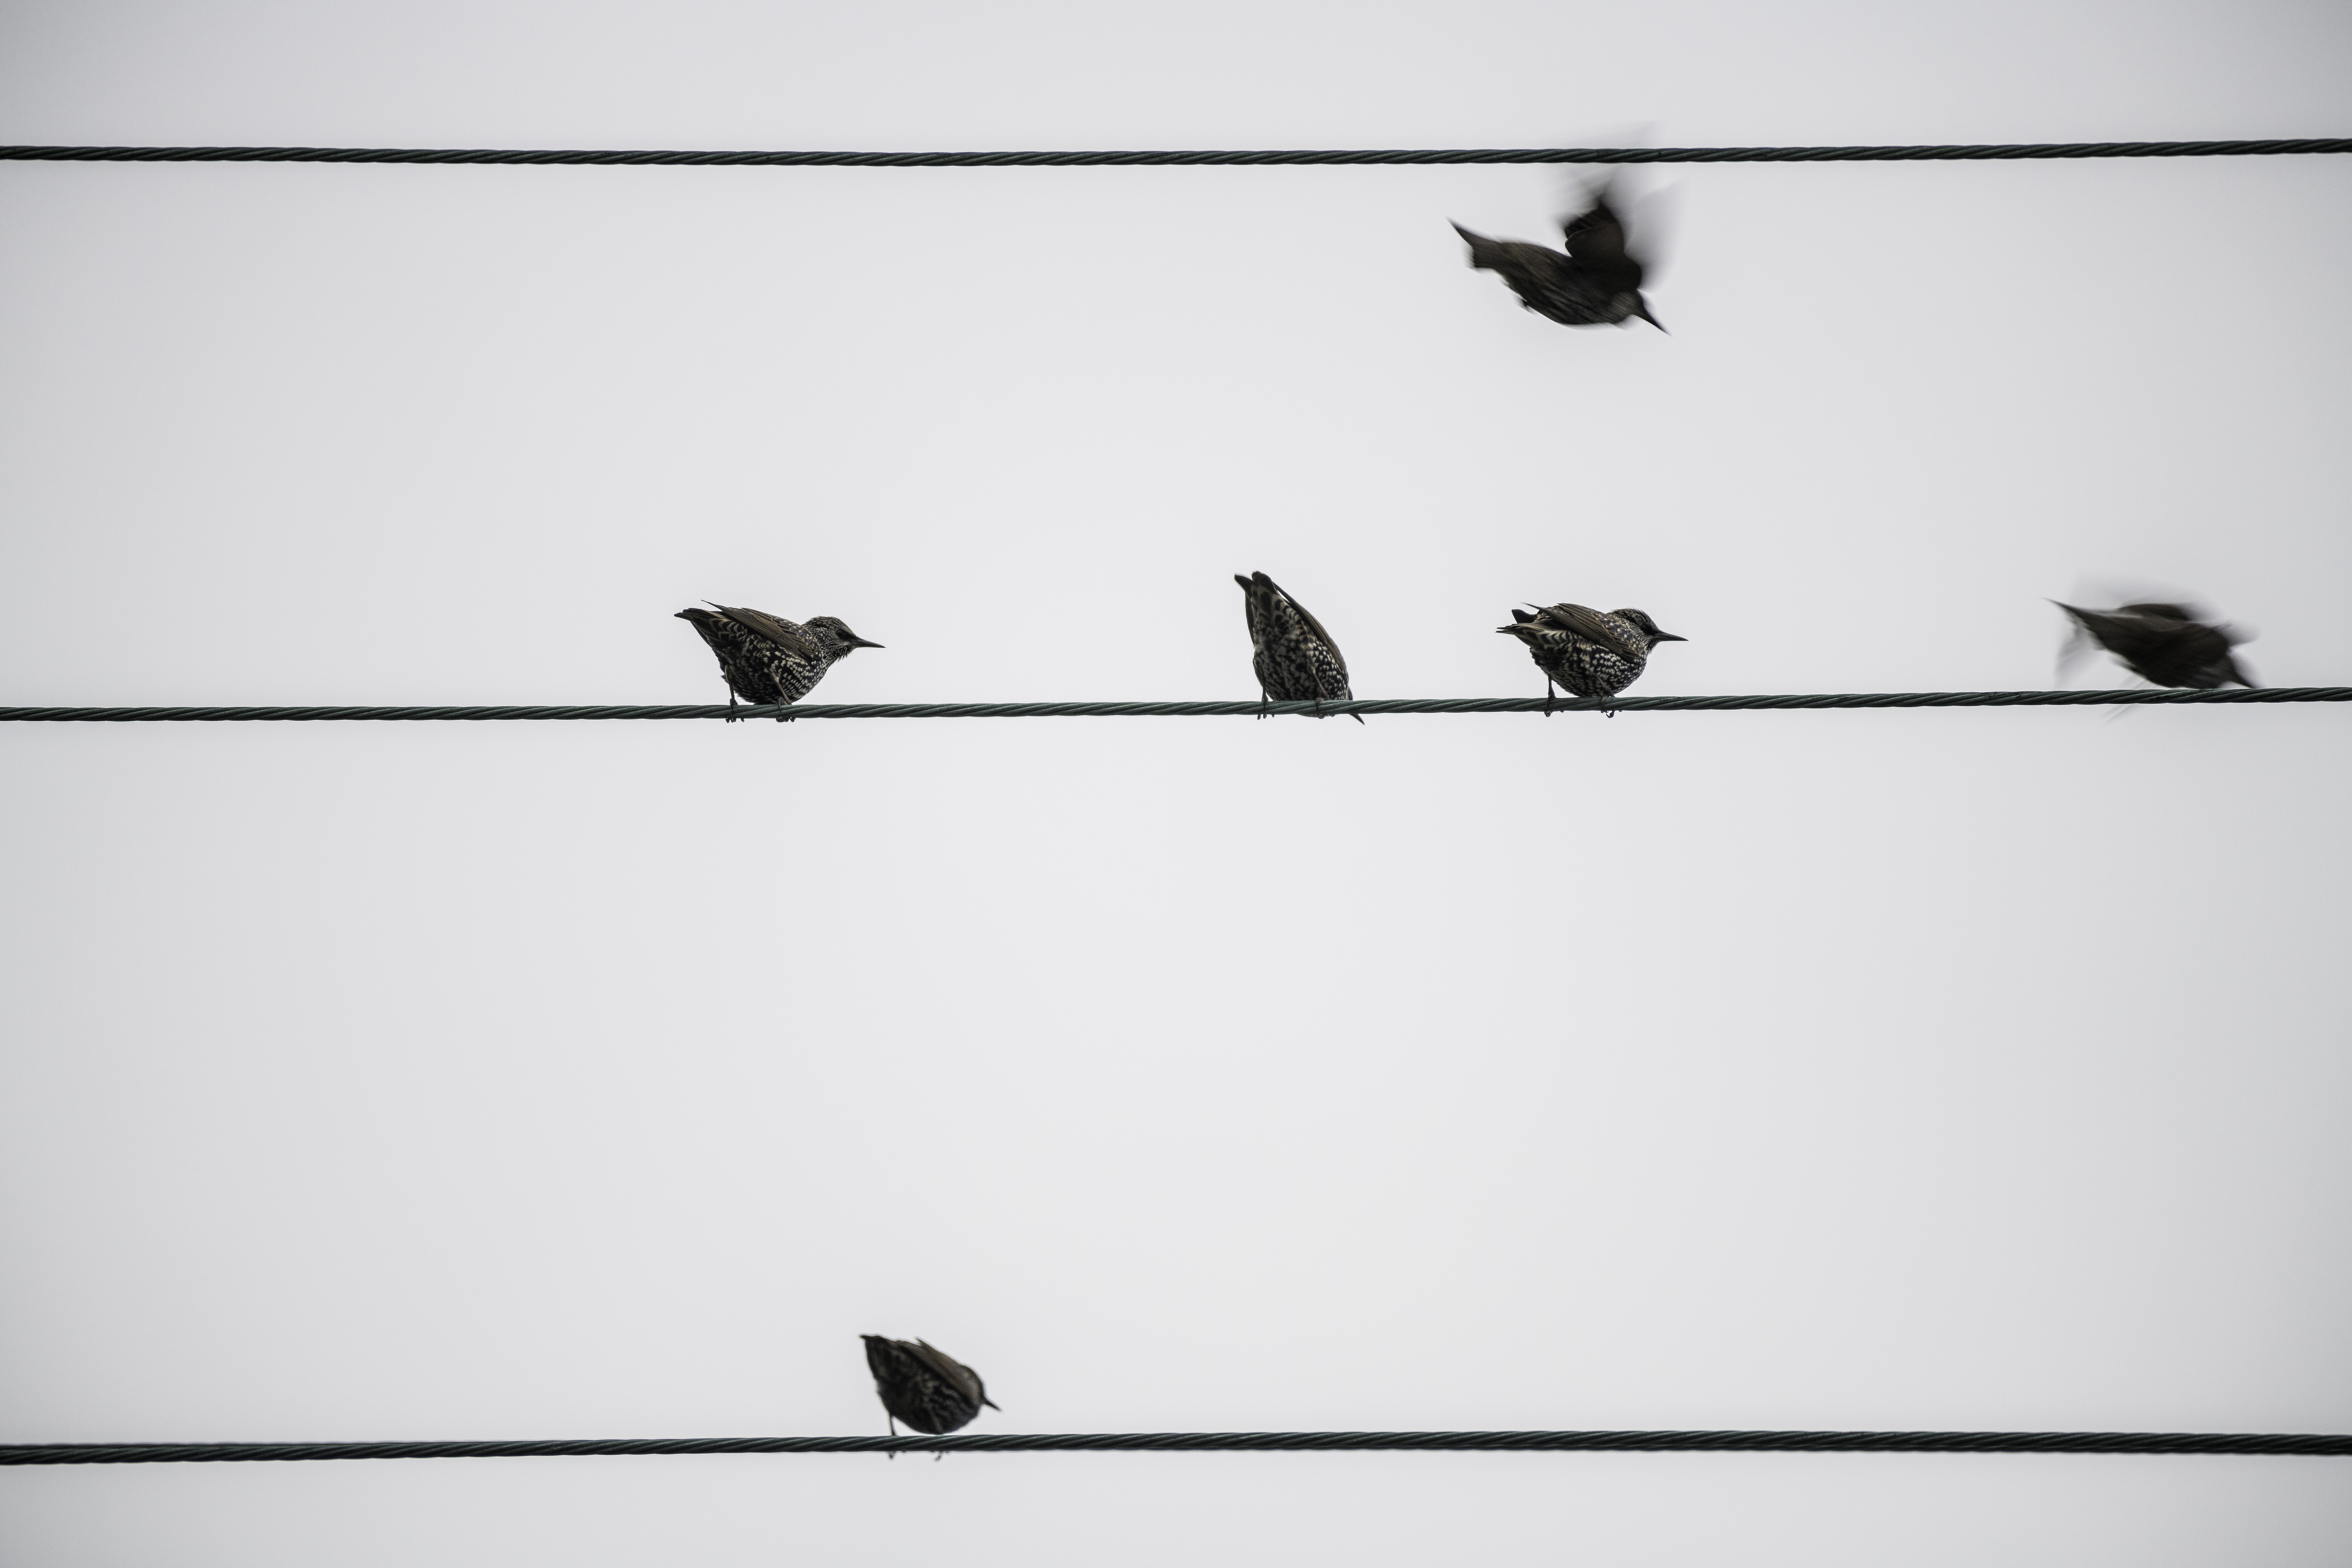 Some birds taking off from a wire image - Free stock photo - Public ...